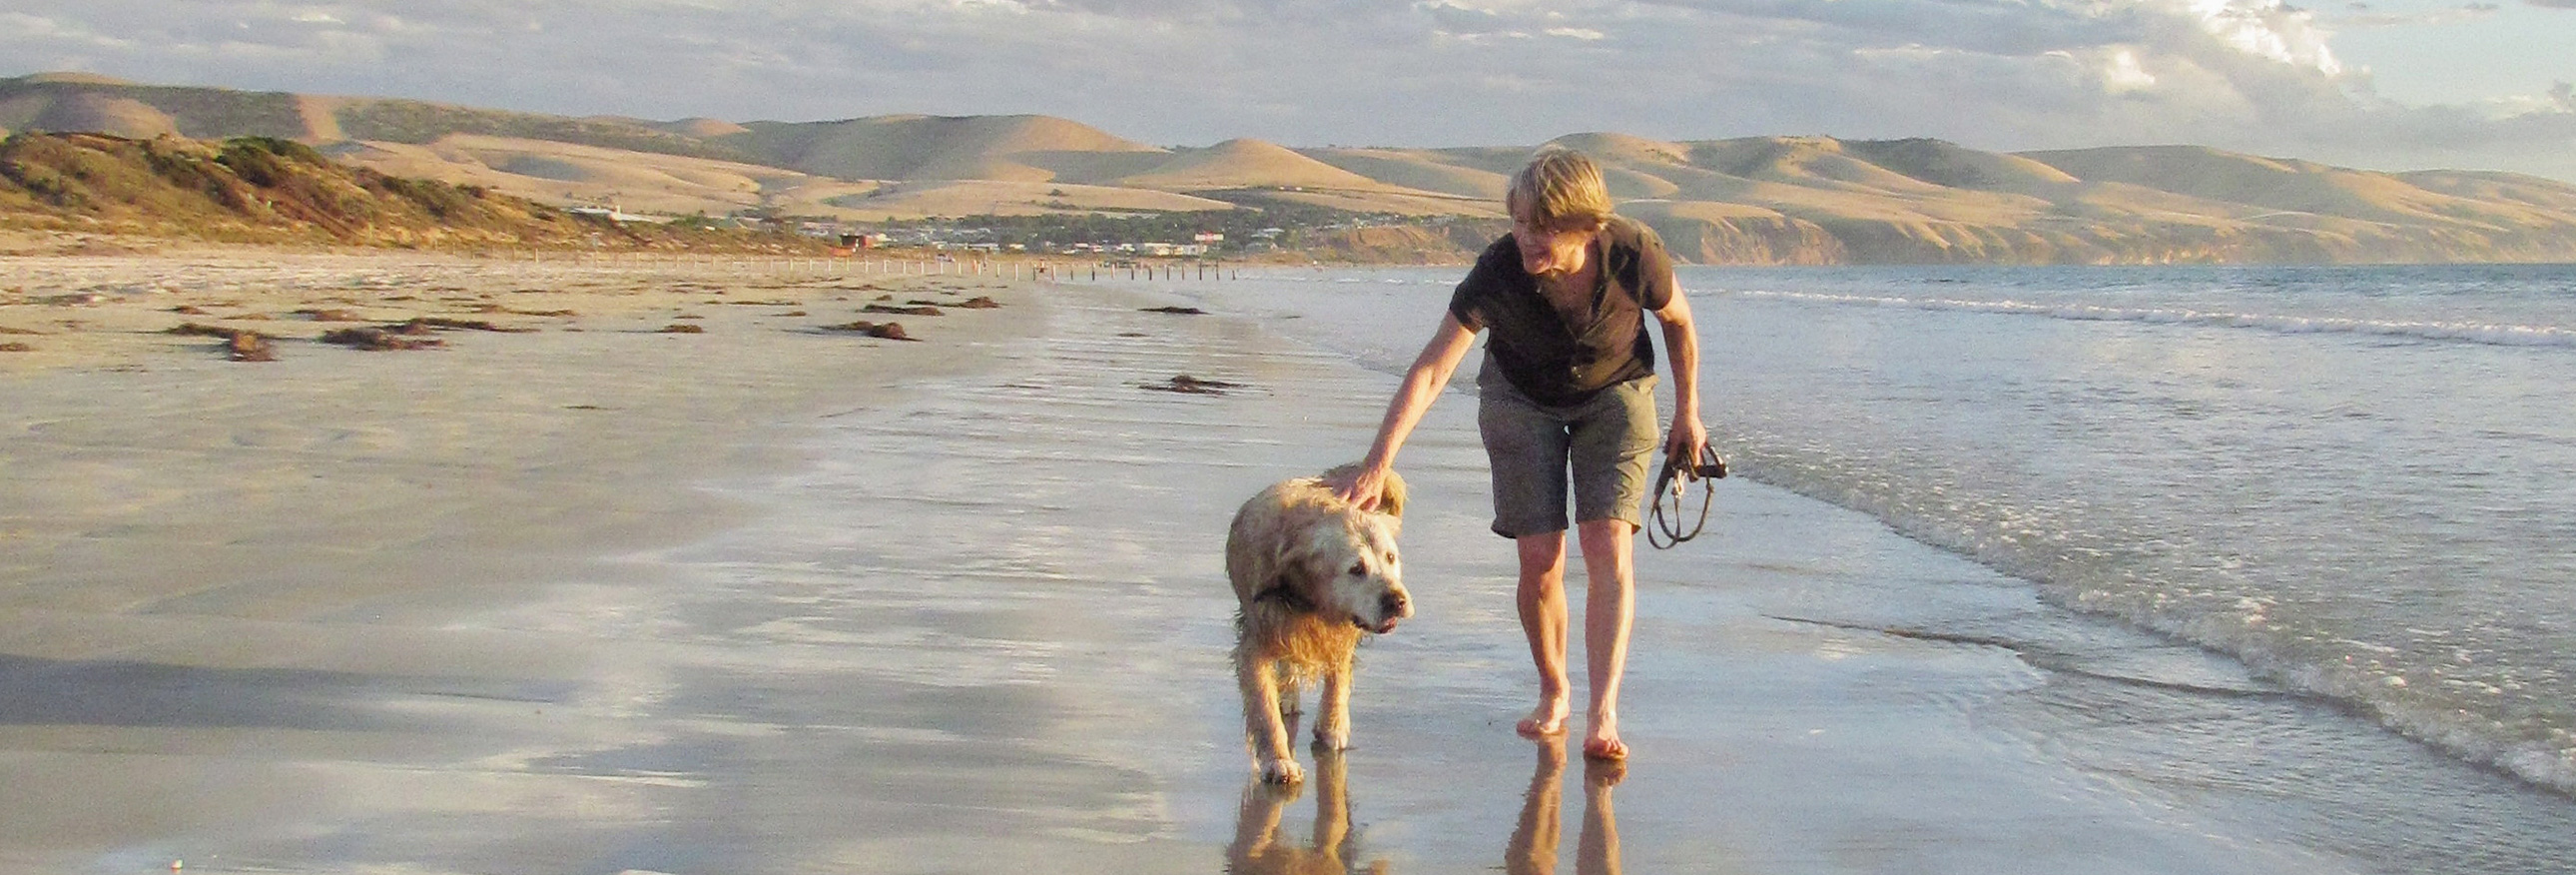 woman and dog walking on the beach